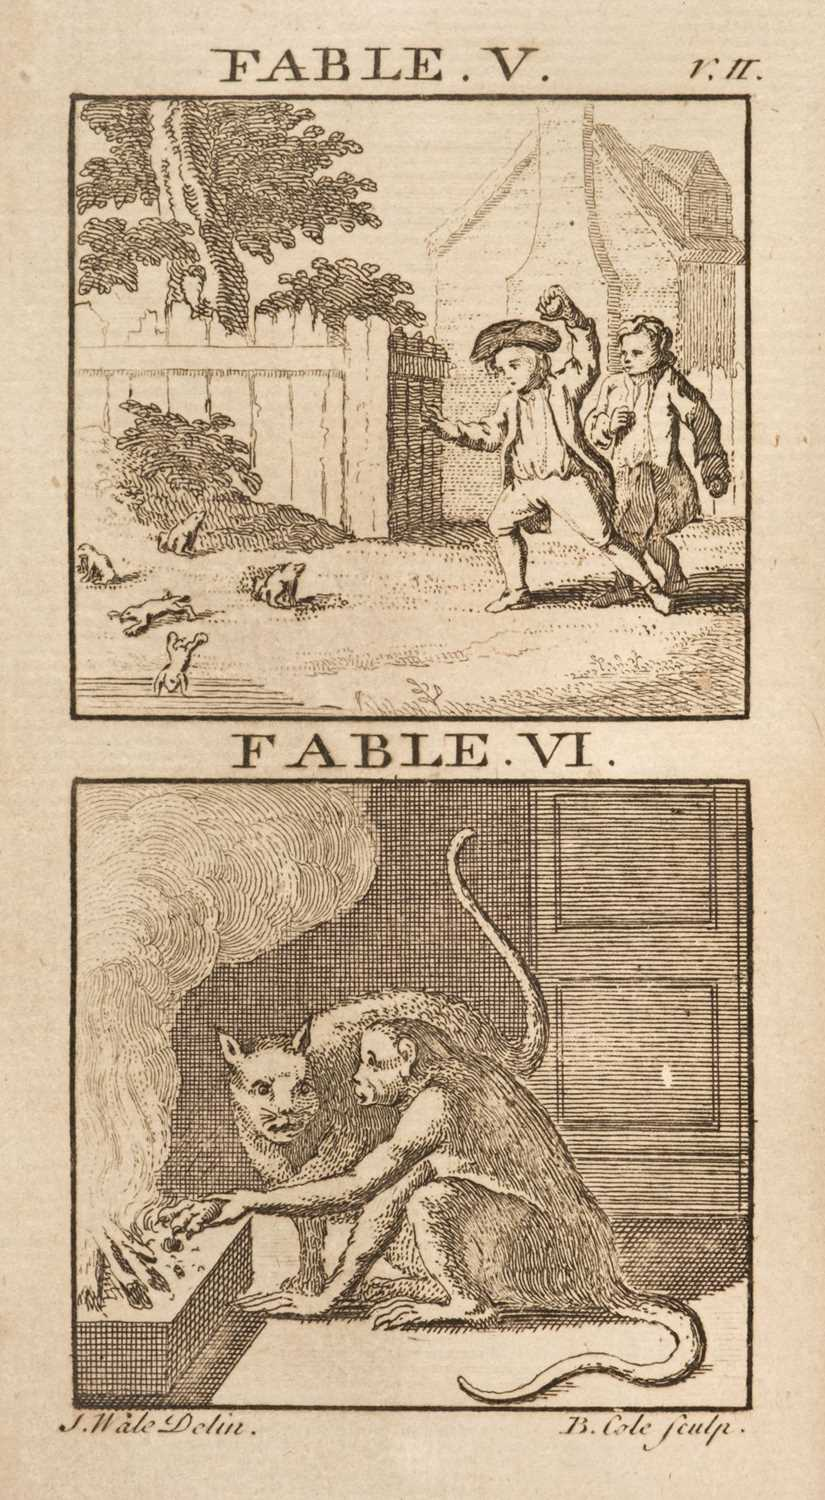 Lot 453 - Fables. Select Tales and Fables, with engravings by B. Cole, London: F. Wingrave, [1780?]